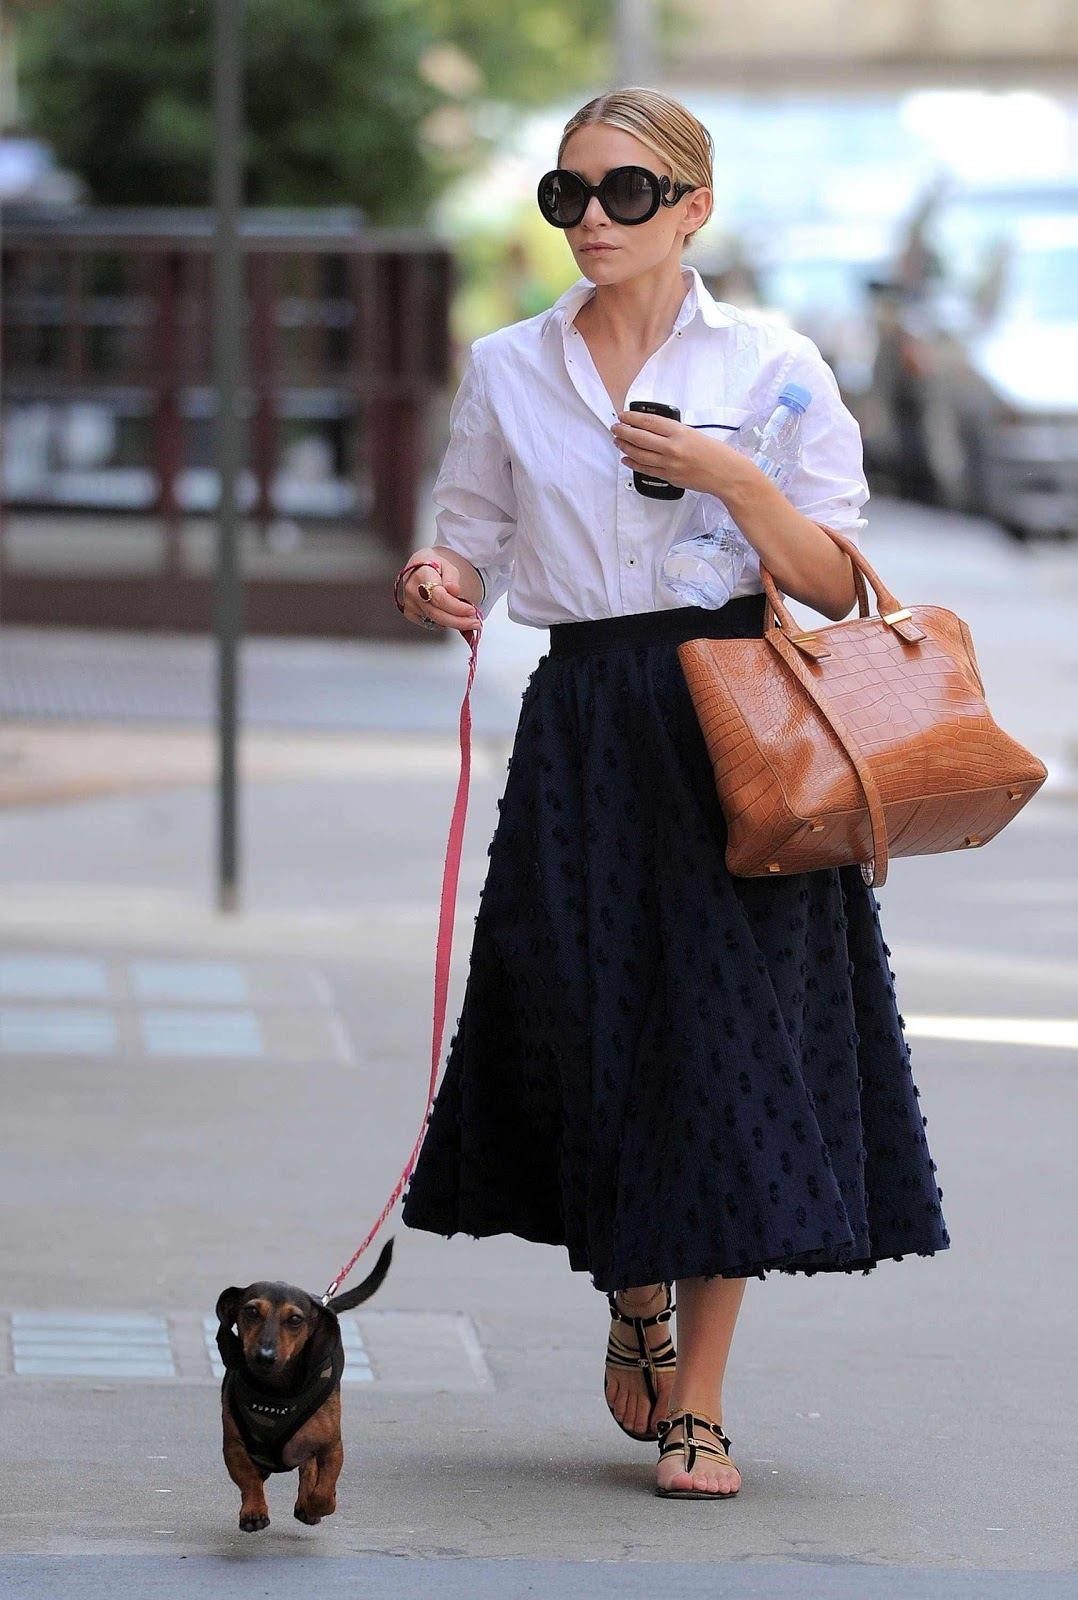 http://2.bp.blogspot.com/-OQXcvhRKRMQ/ThNEaw12j9I/AAAAAAAACQI/sAffVA0NtIM/s1600/ashley+olsen+walking+her+dog.jpg